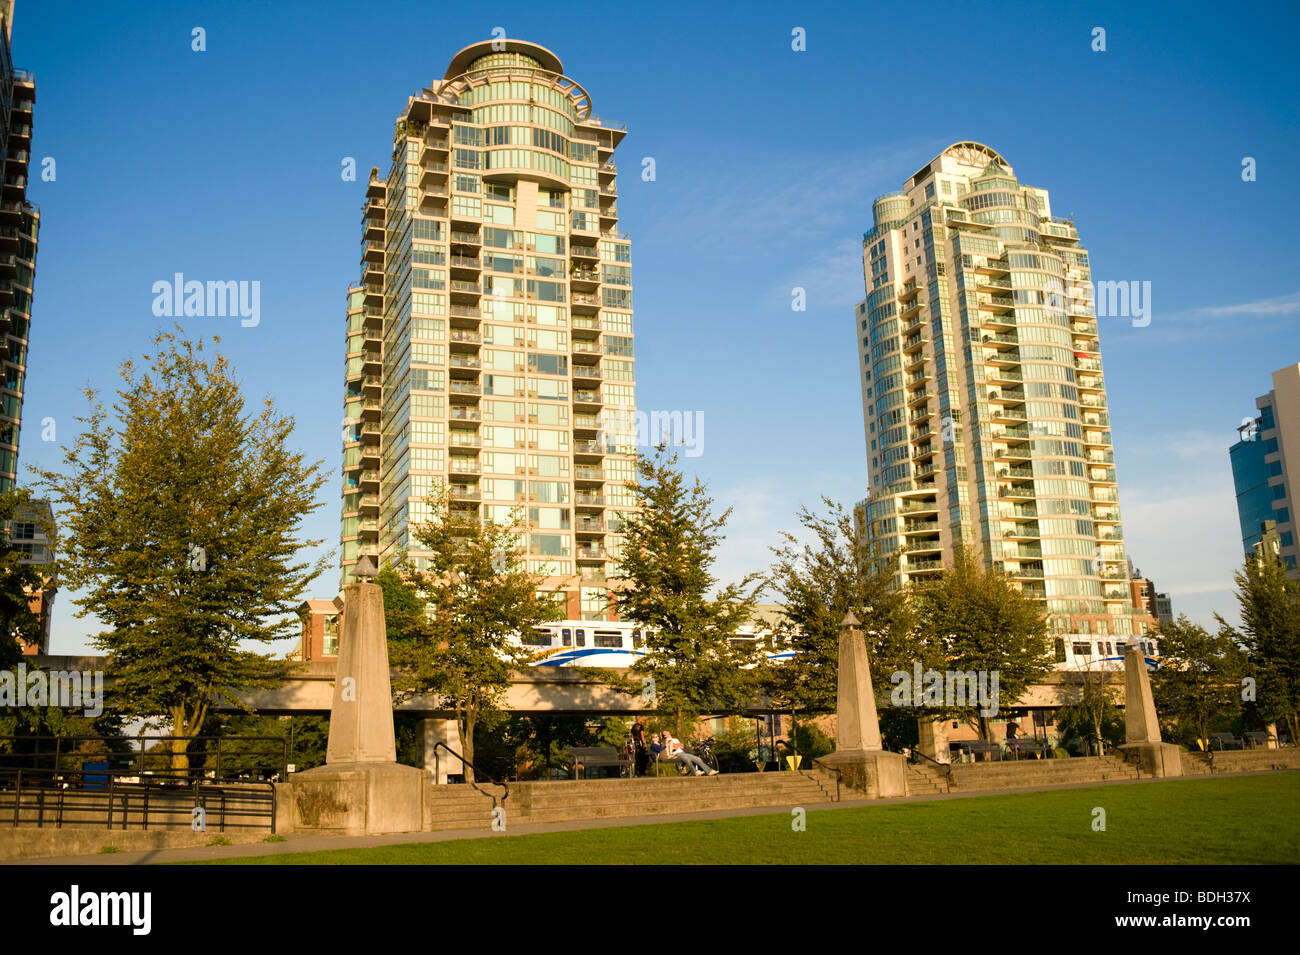 Vancouver Condominium Towers with the Skytrain in the foreground. Vancouver BC, Canada - Stock Image